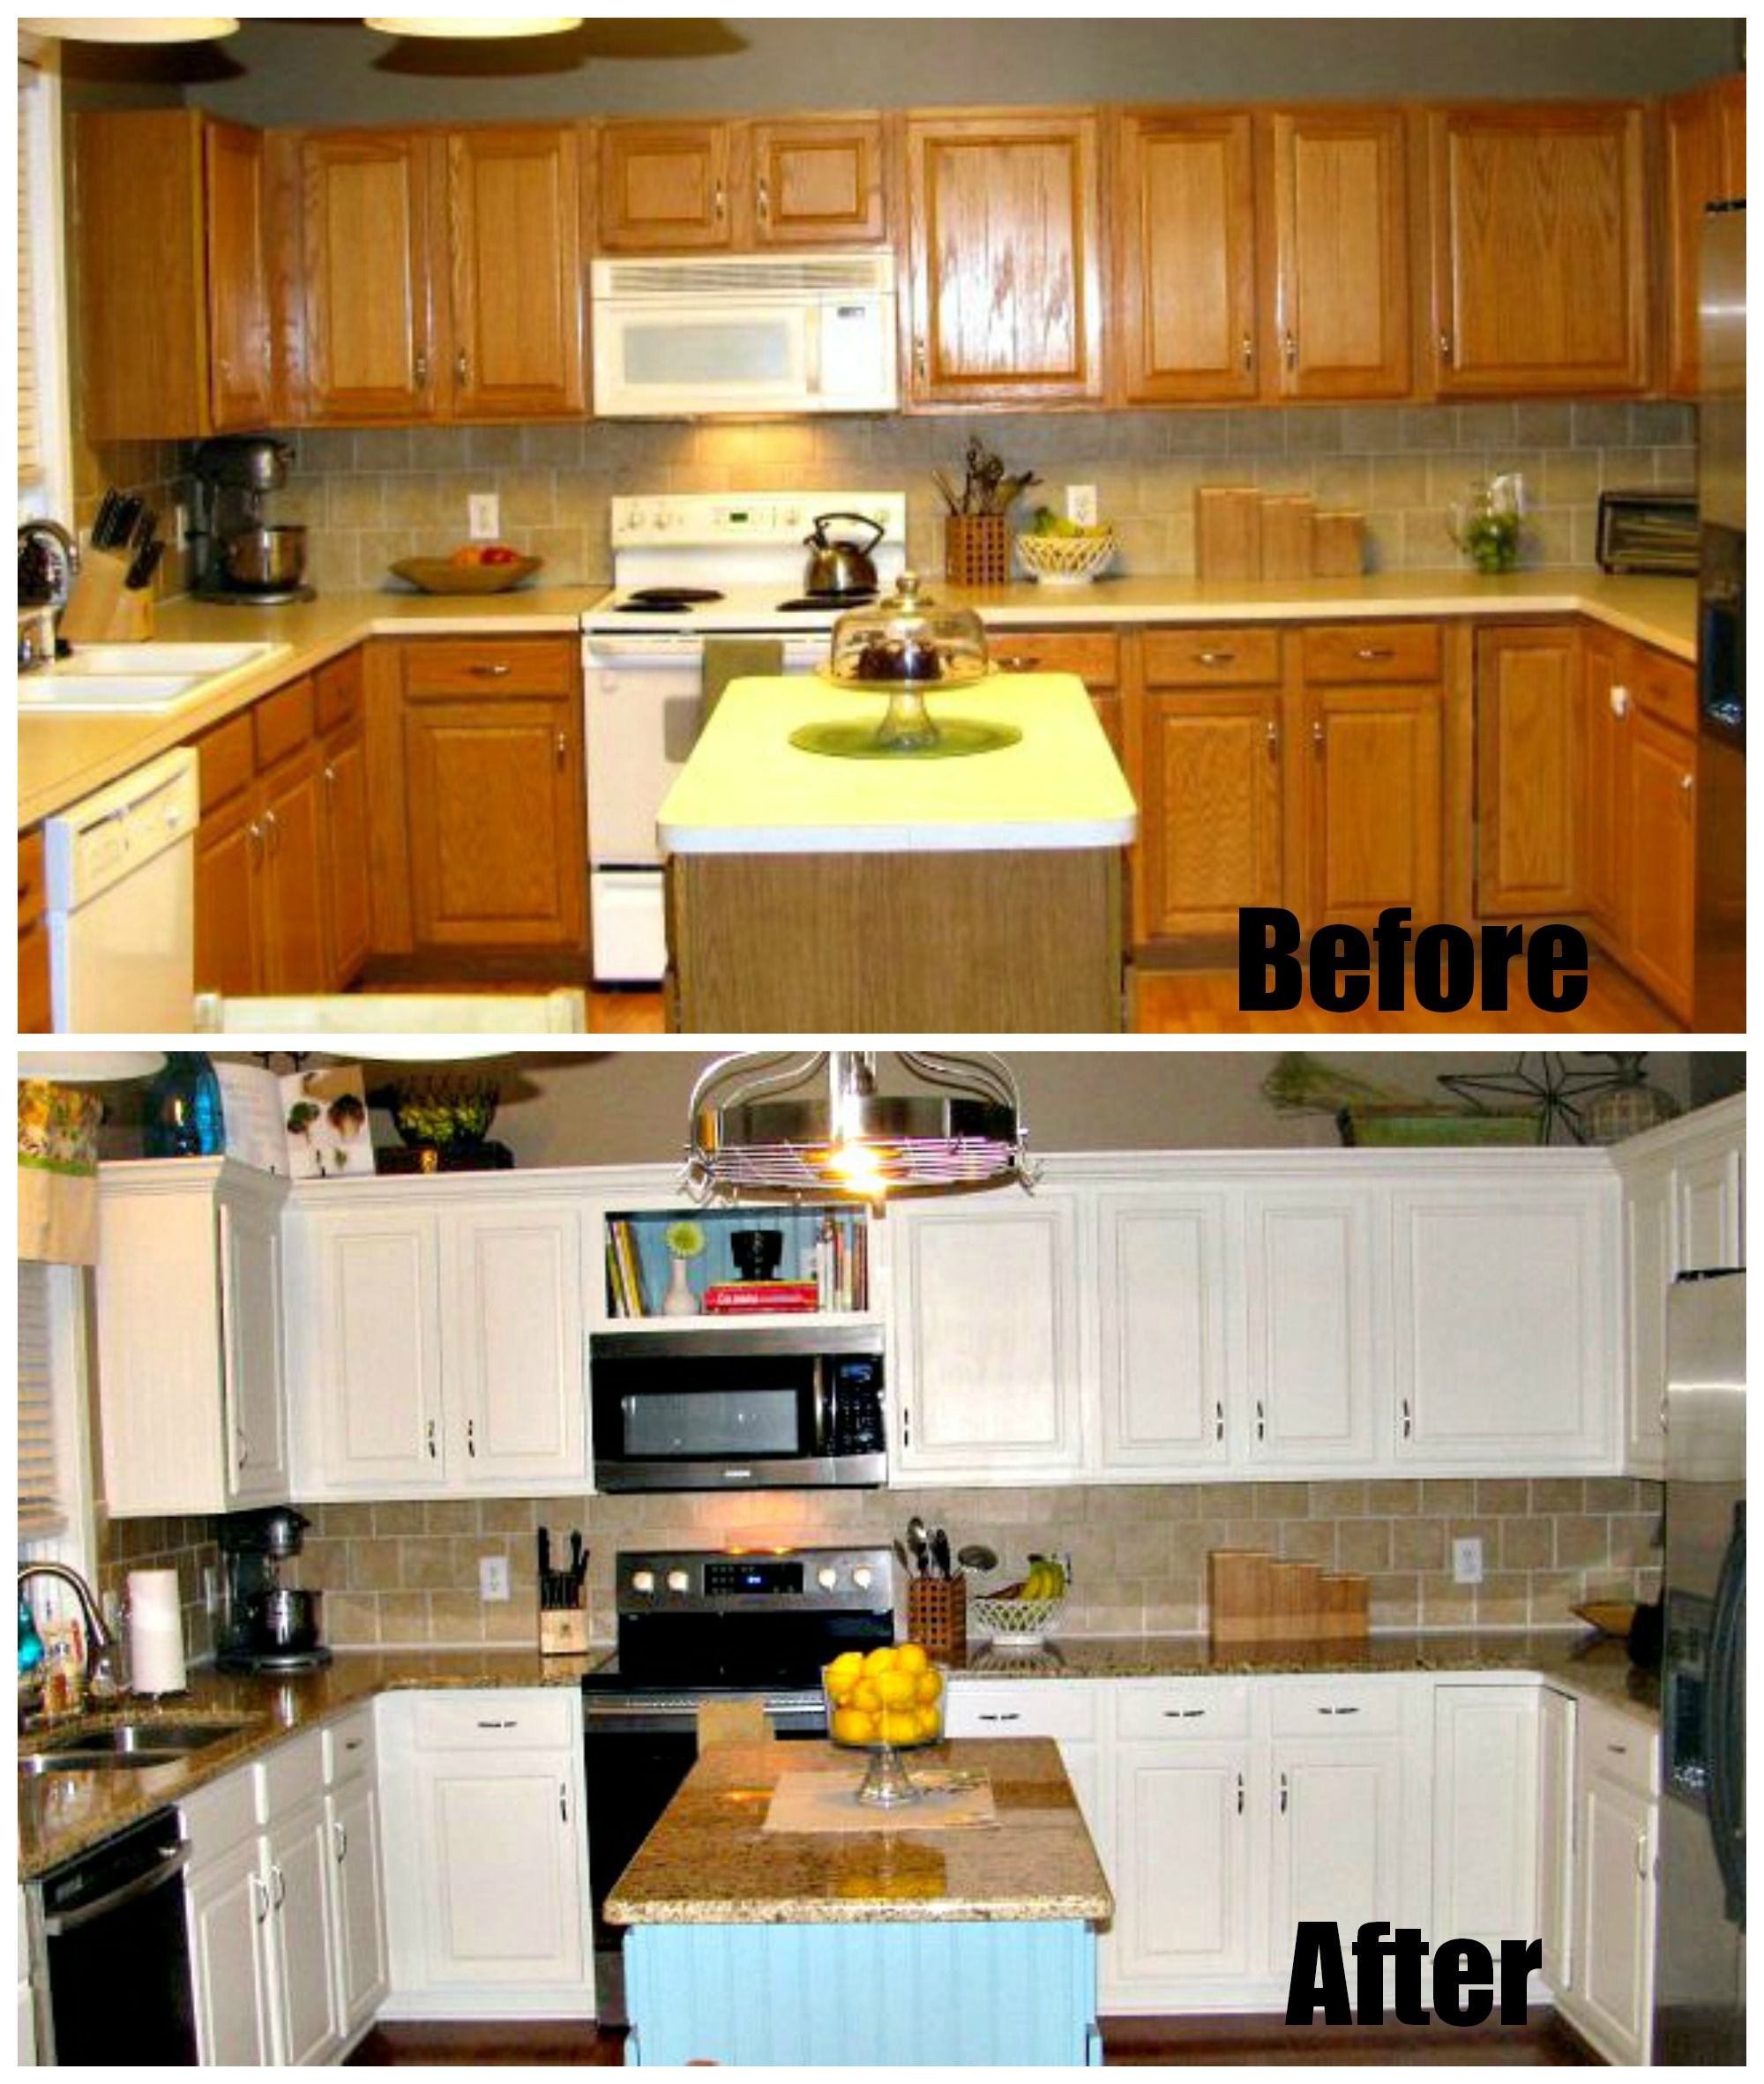 Dyi Kitchen Cabinets: DIY, Low Budget, Kitchen Remodel